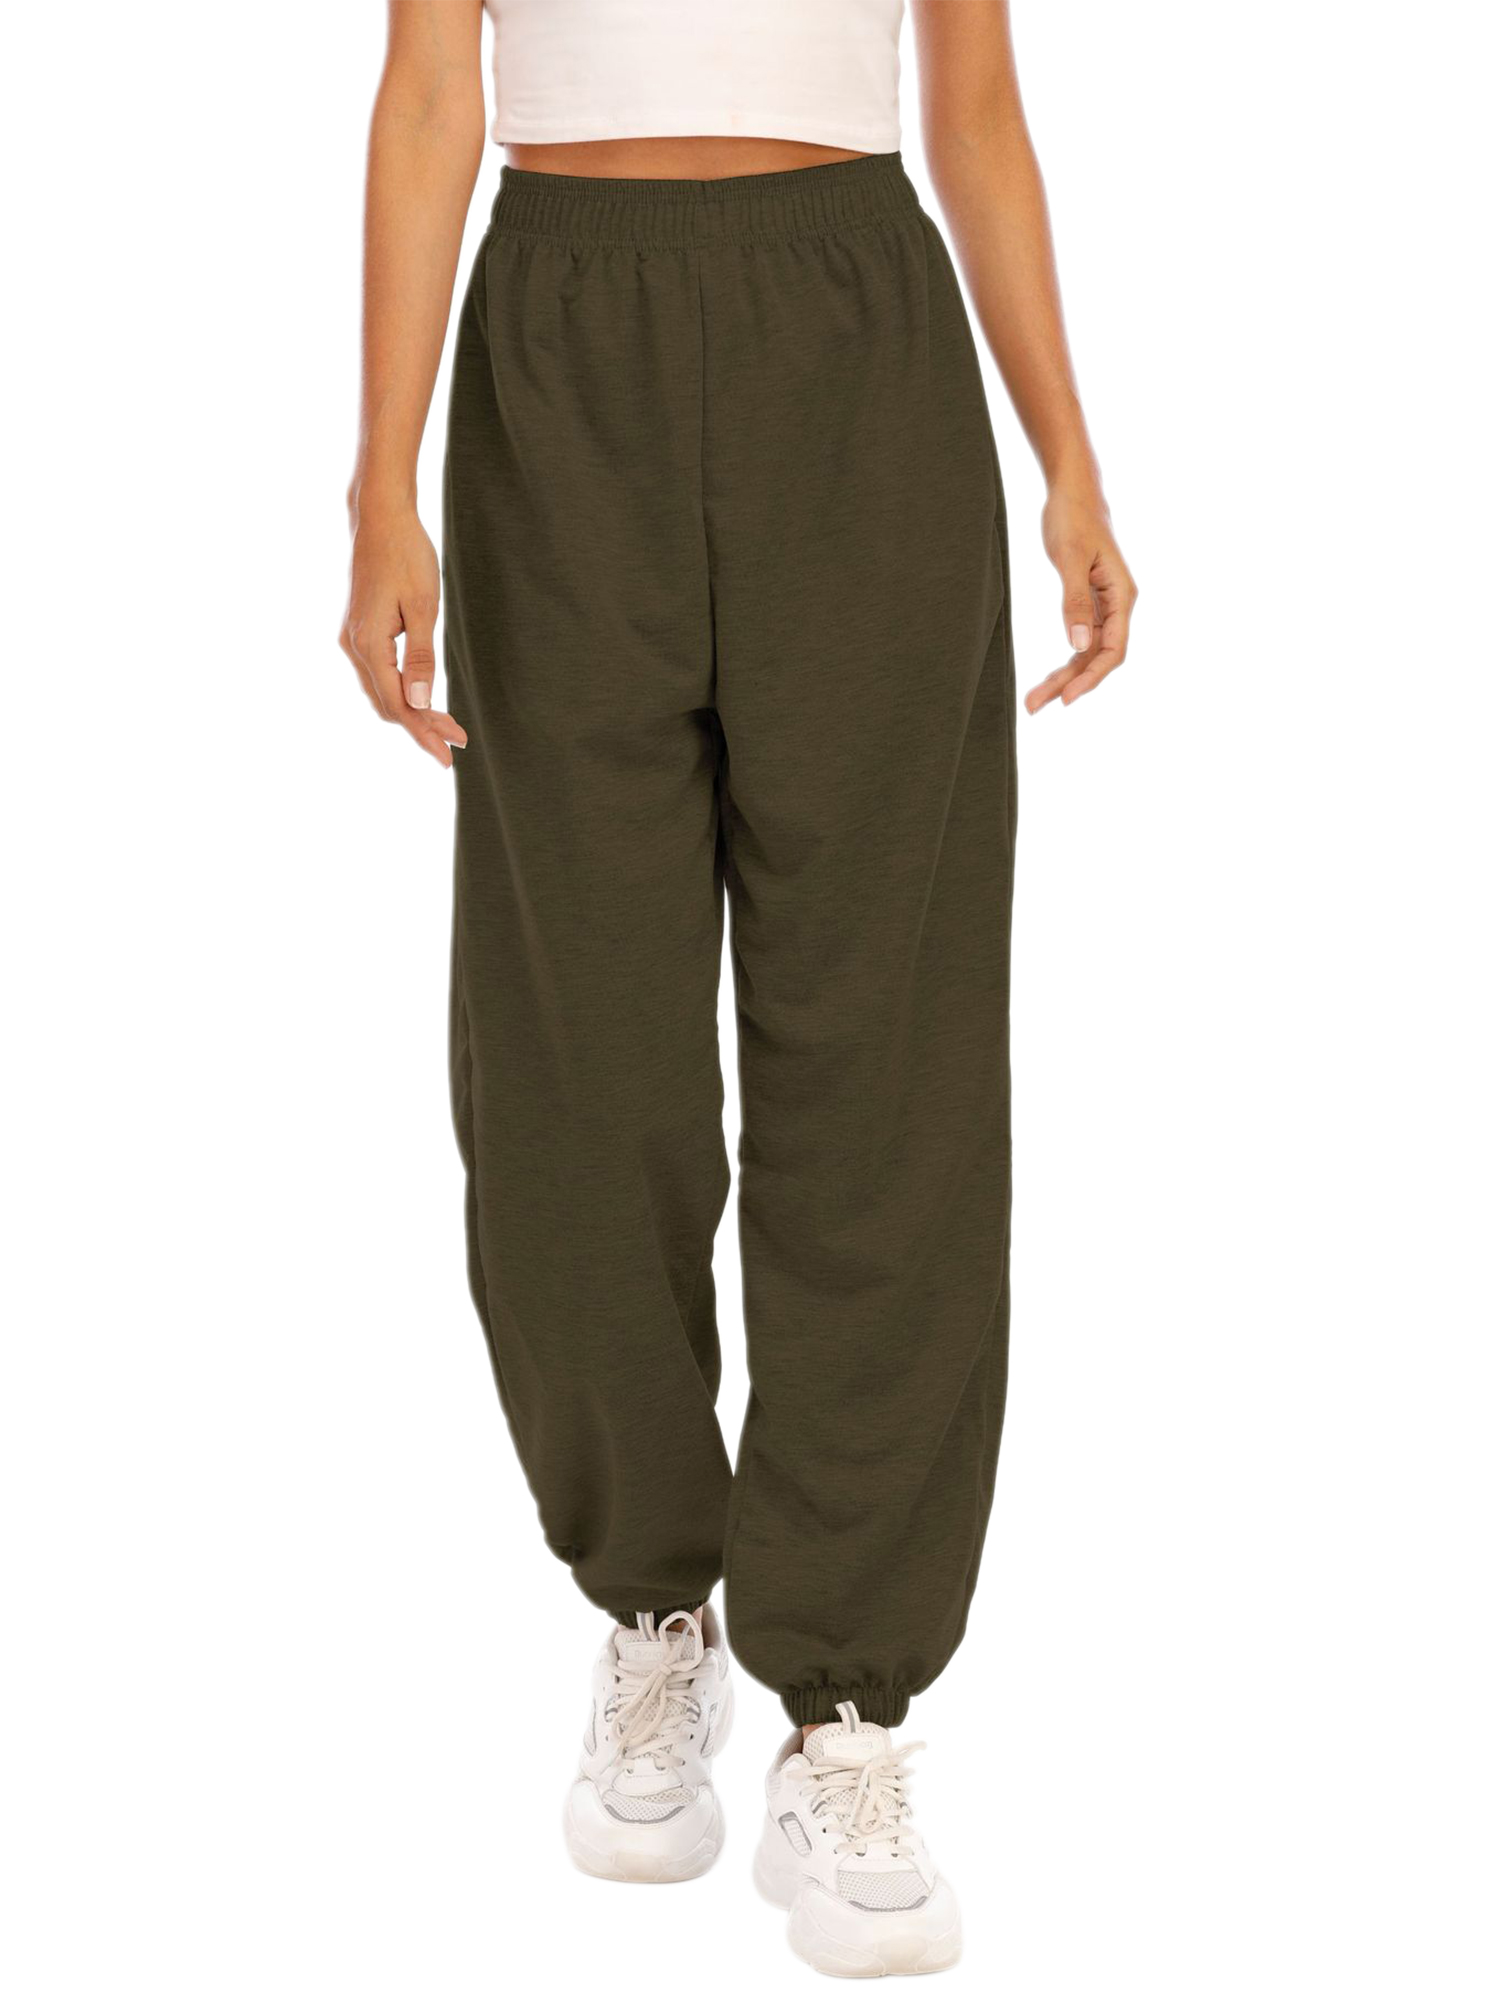 Details about  /Hanes Women/'s French Terry Pant